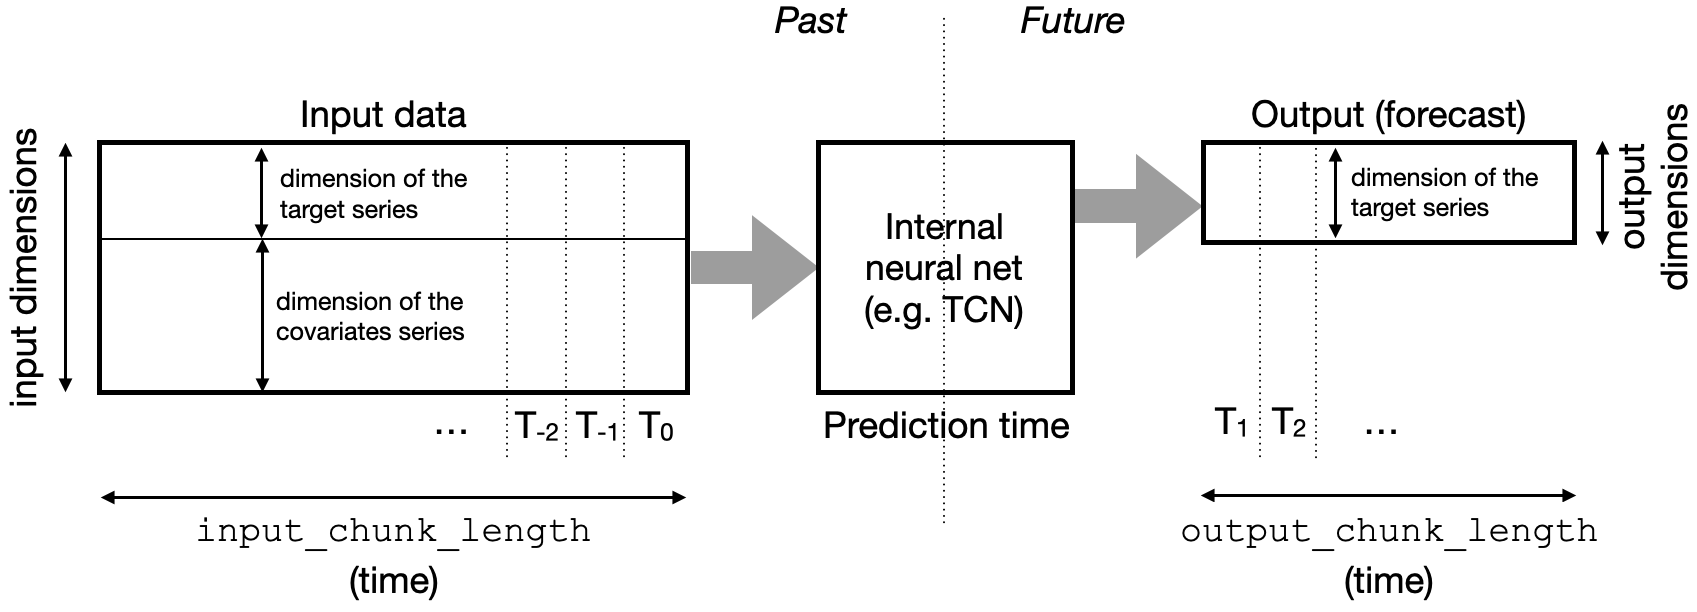 The input and output time series chunks consumed and produced by the neural network to make forecasts.